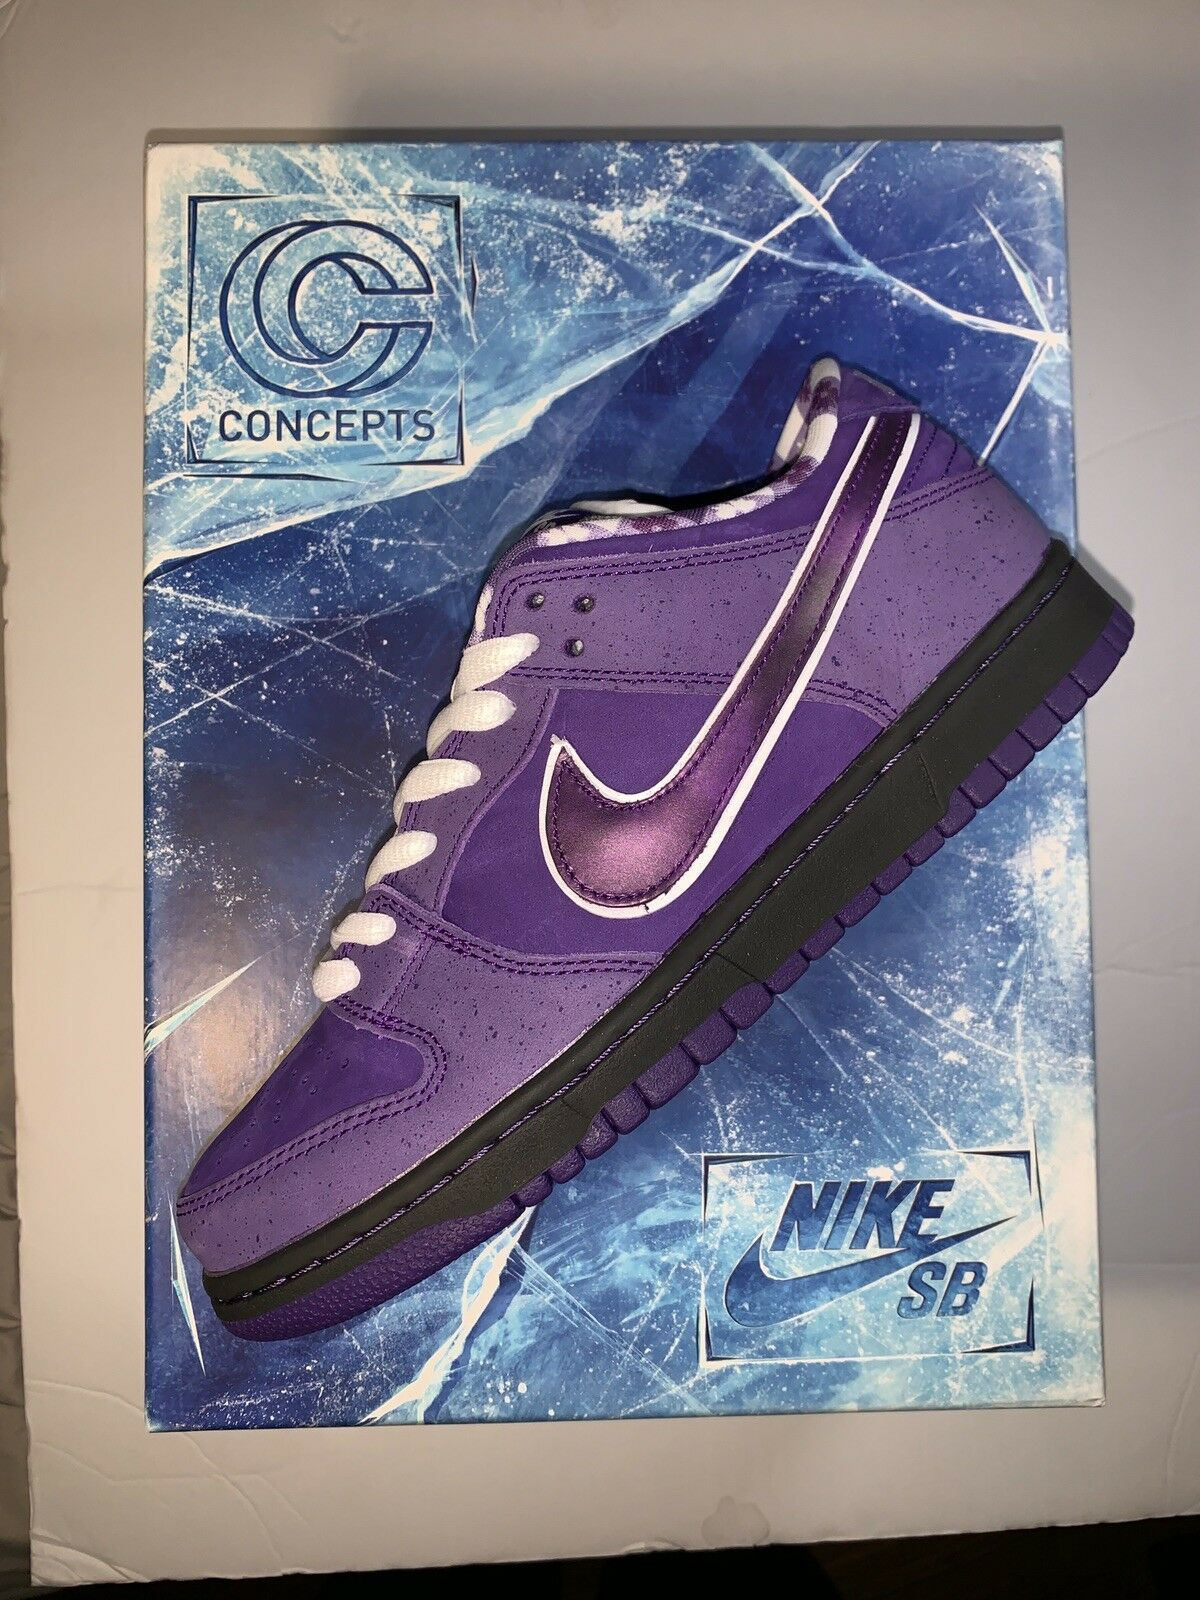 "Nike Sb x Concepts ""Purple Lobster"" Special Packaging (SIZE 7)"